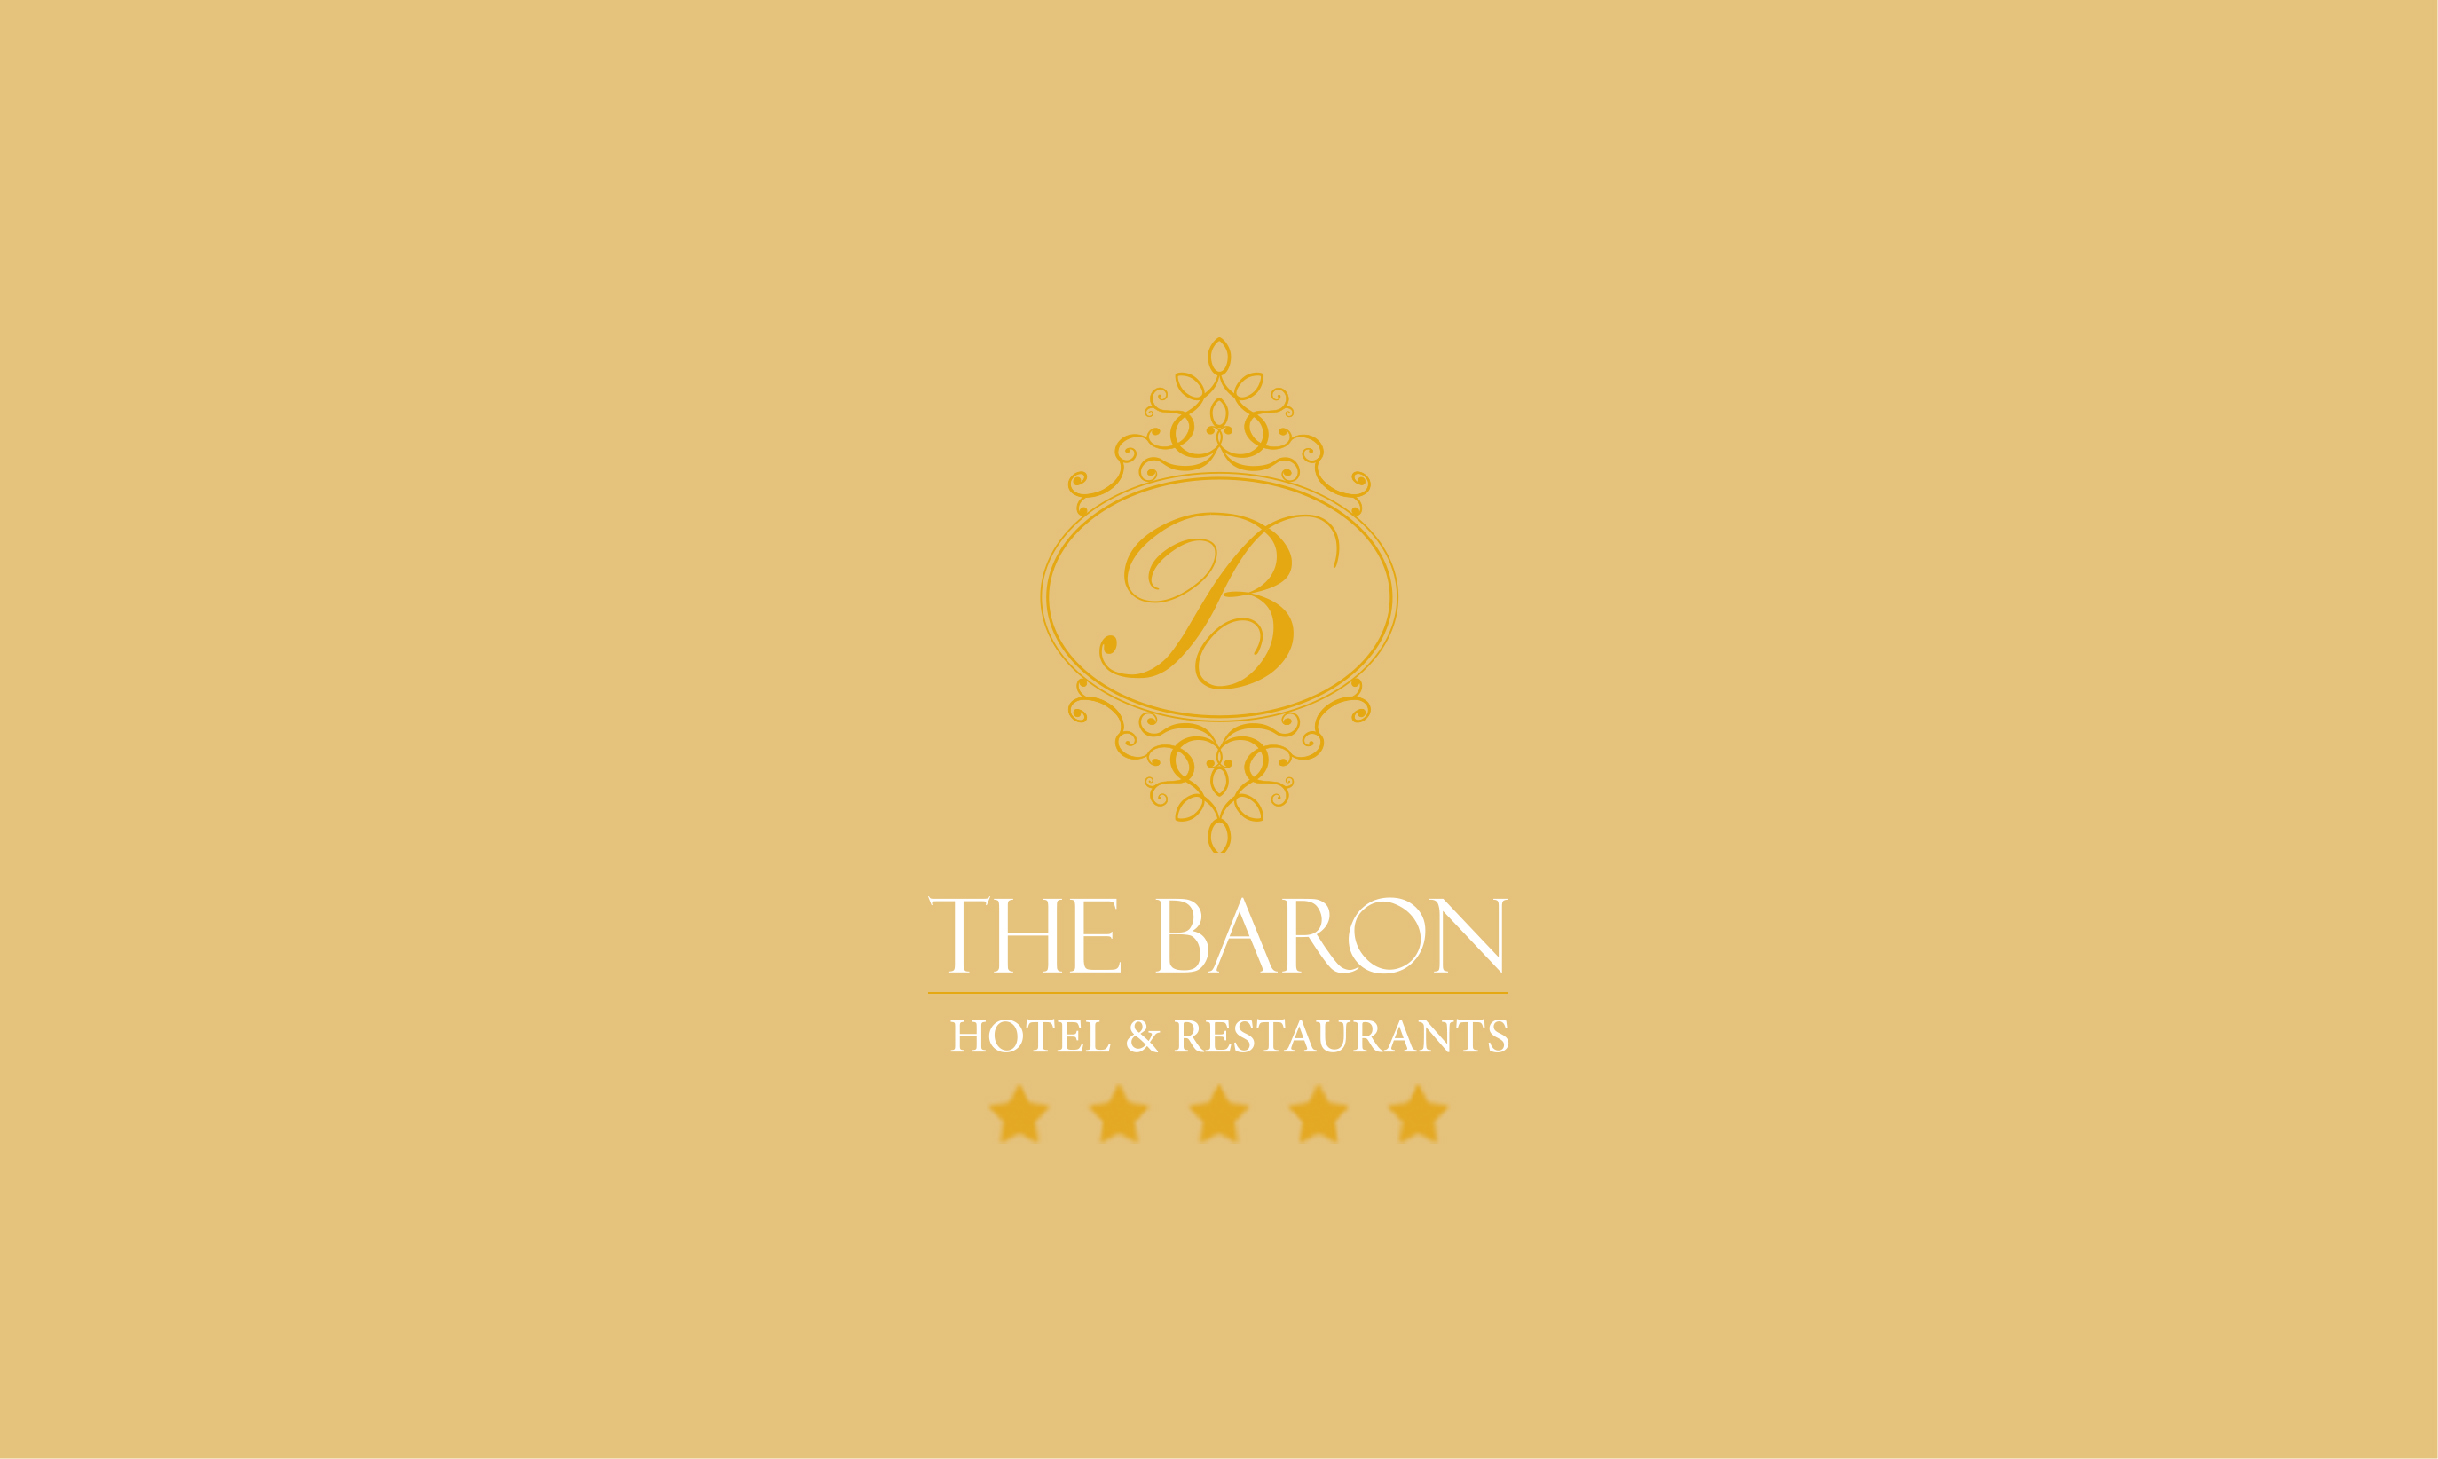 the baron hotel and restaurant The Baron Hotel and Restaurant Portfolio feature image The Baron